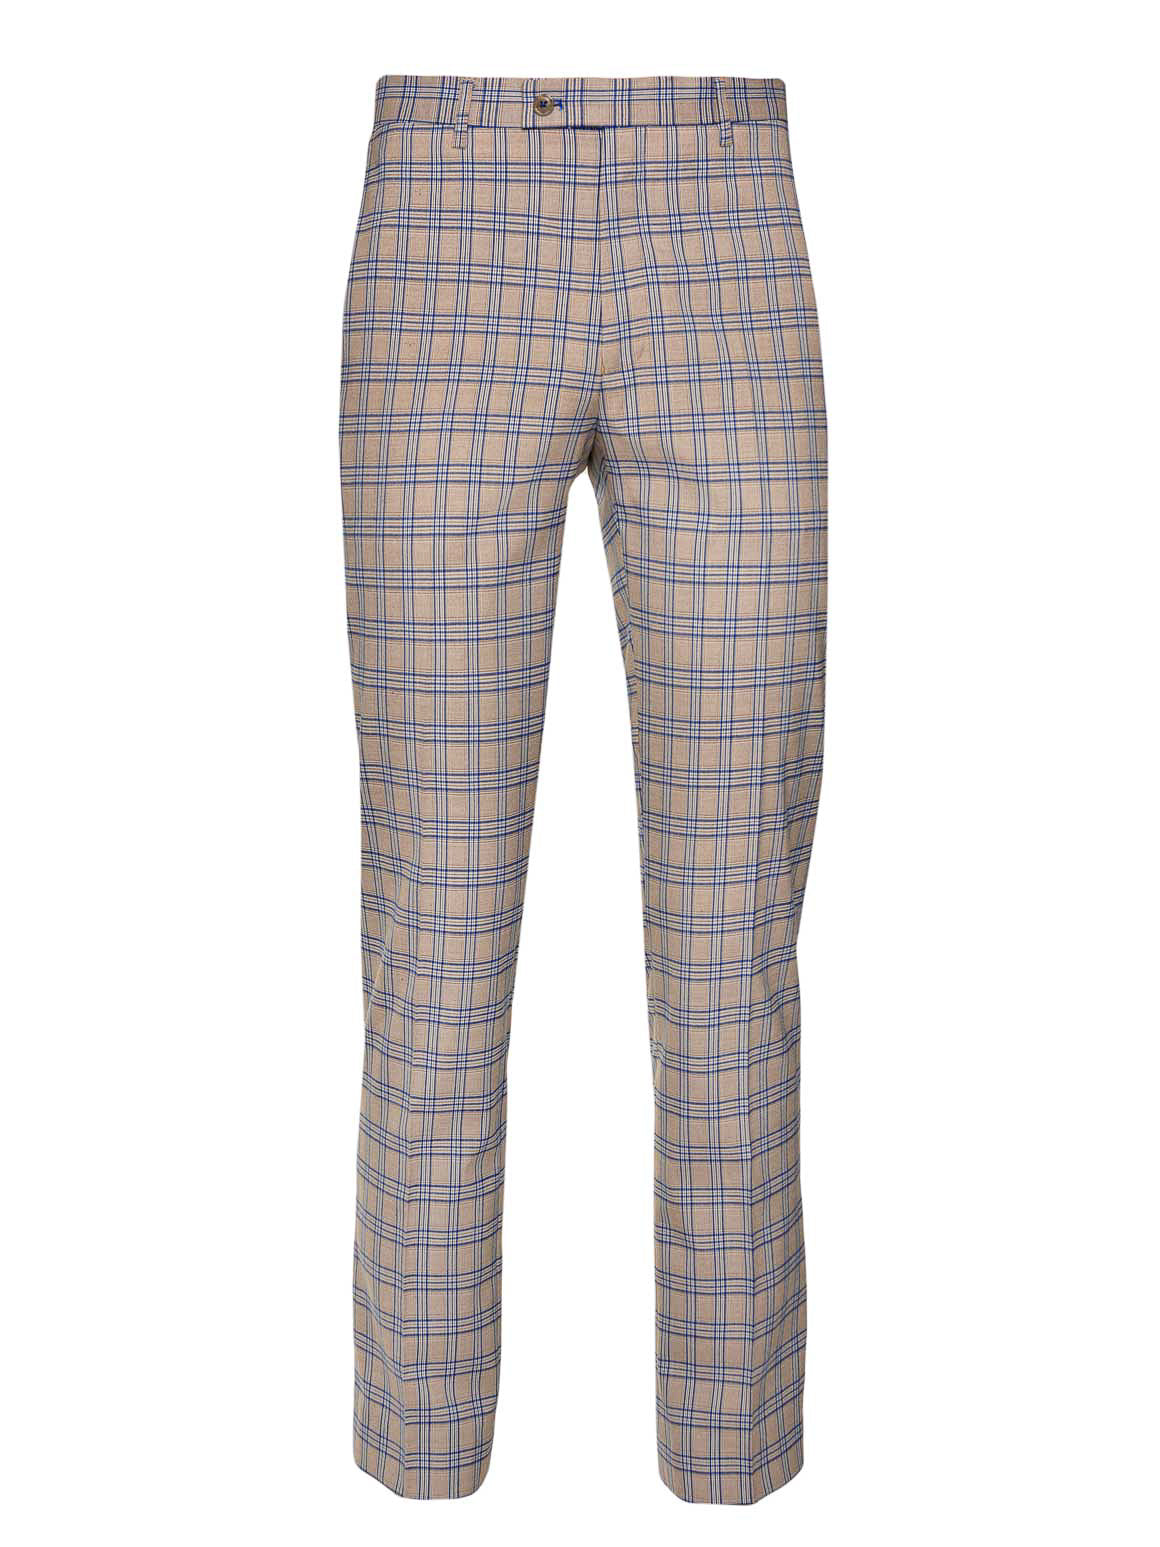 Downing Pants  - French Blue Tan Plaid